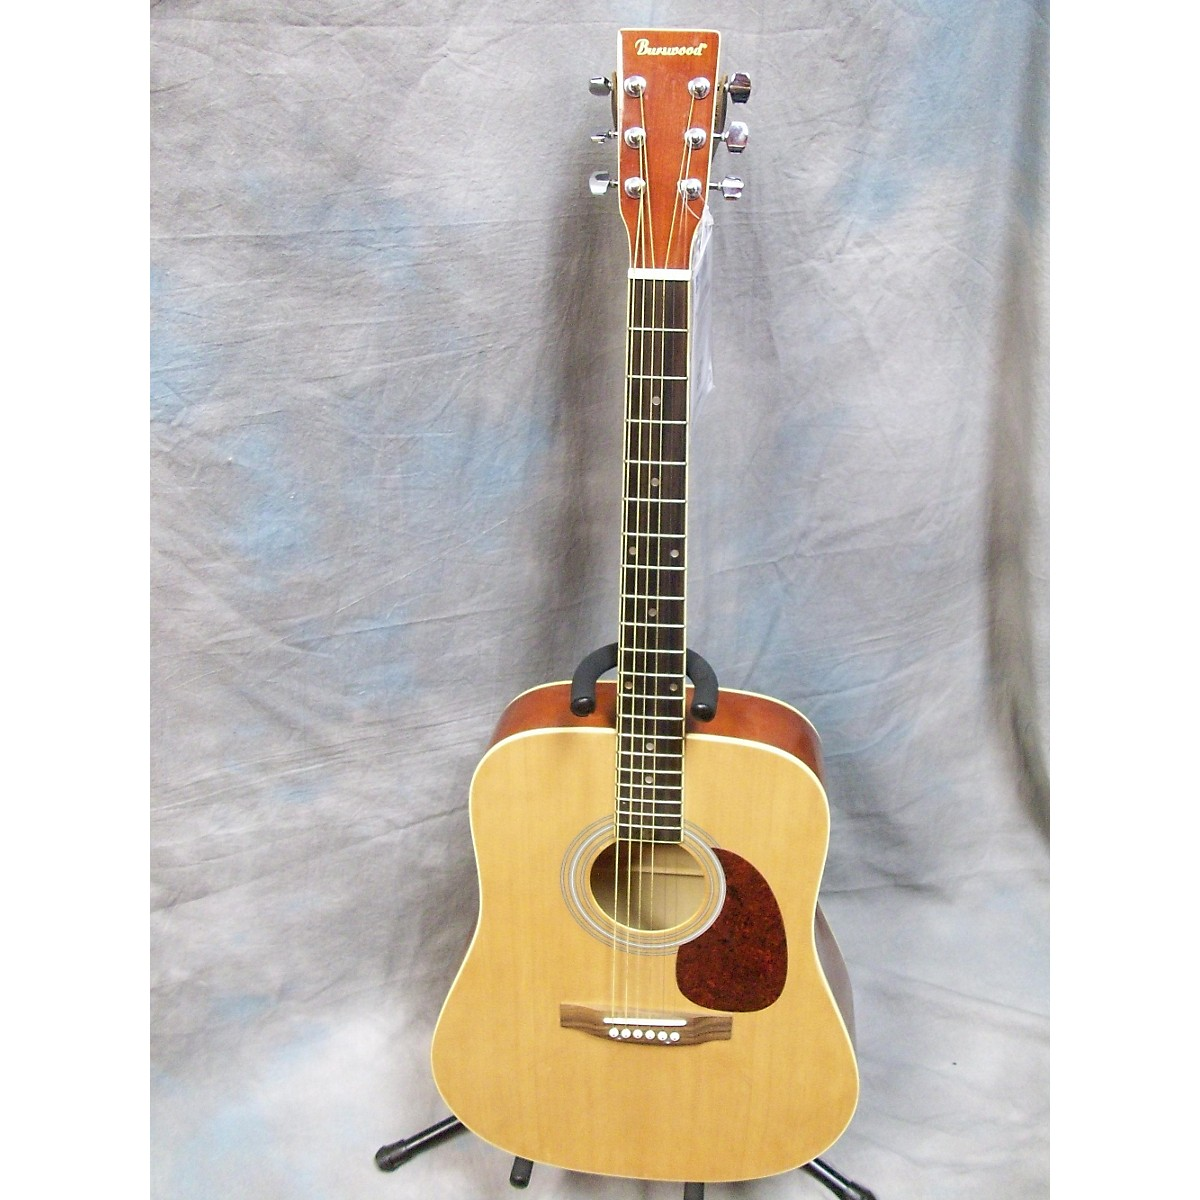 Burswood JW41F Natural Acoustic Guitar